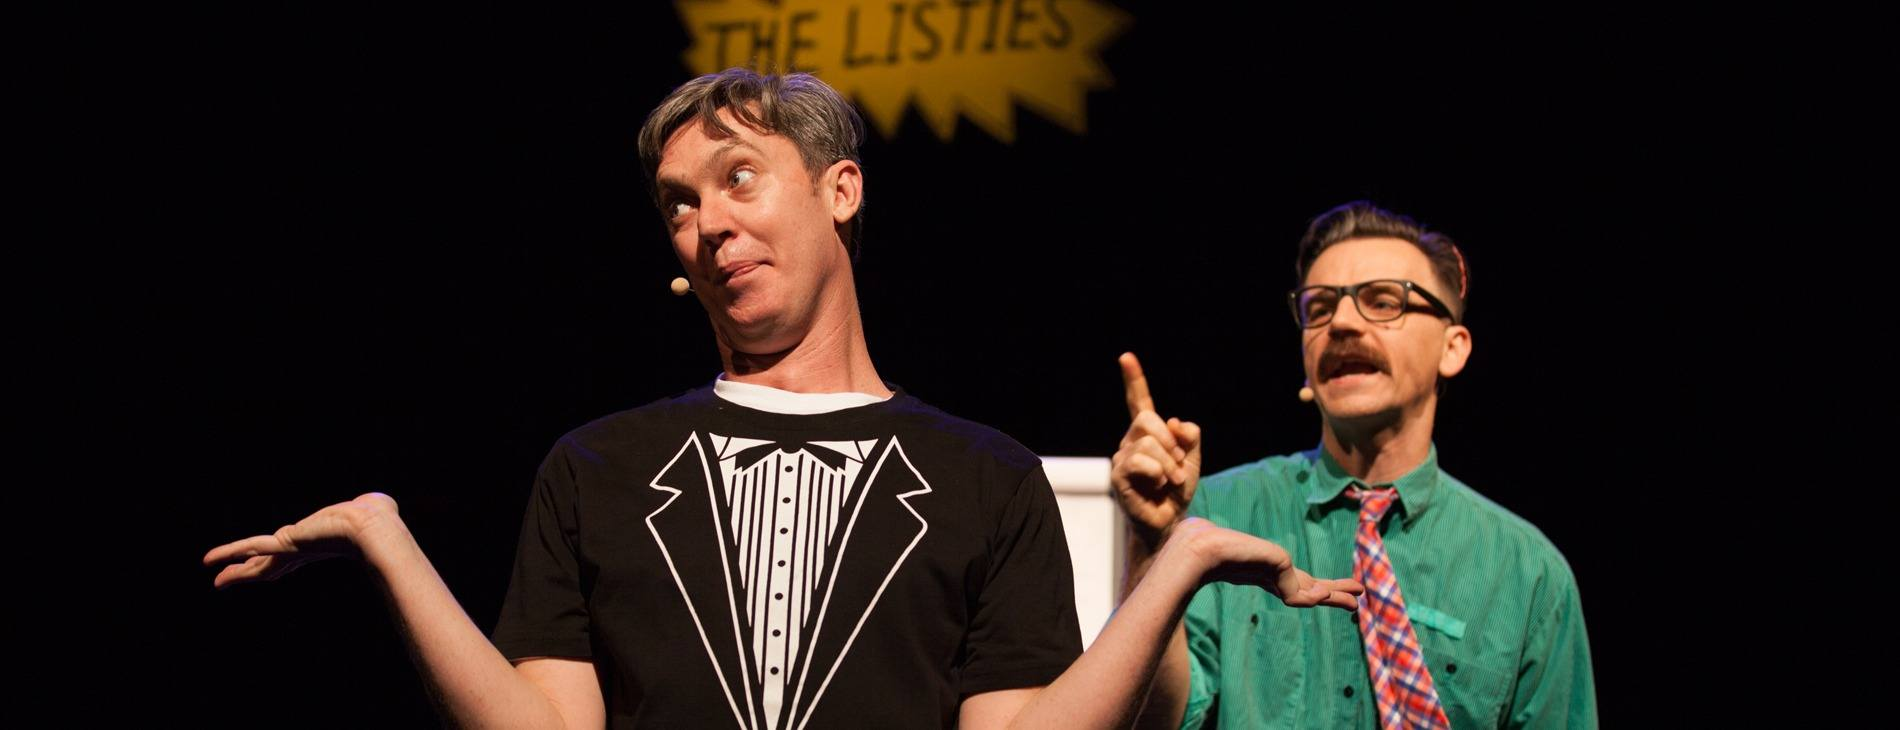 The Listies at monkey baa darling quarter theatre sydney